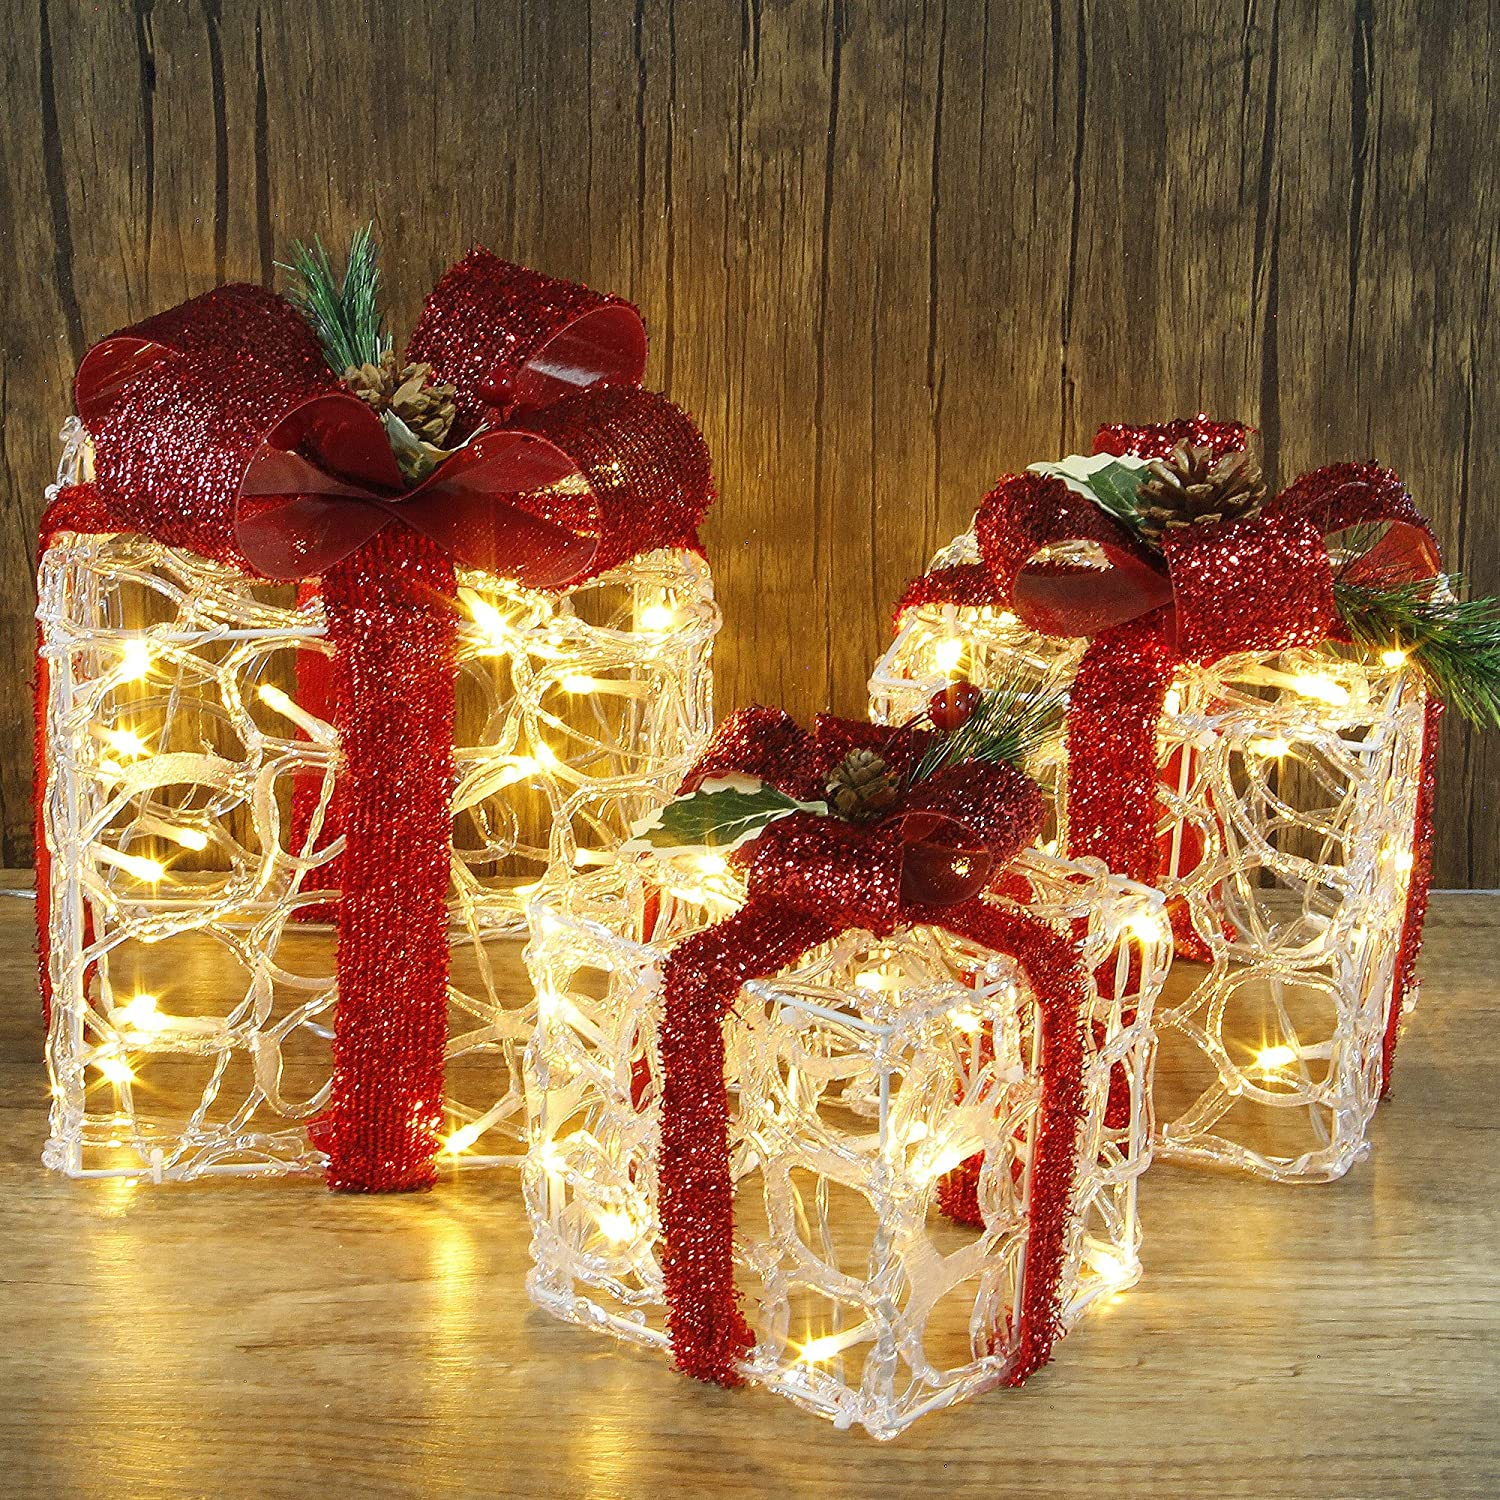 ATDAWN Set of 3 Lighted Gift Boxes Christmas Decorations, Clear Acrylic Pre-lit Present Boxes, Christmas Home Gift Box Decorations